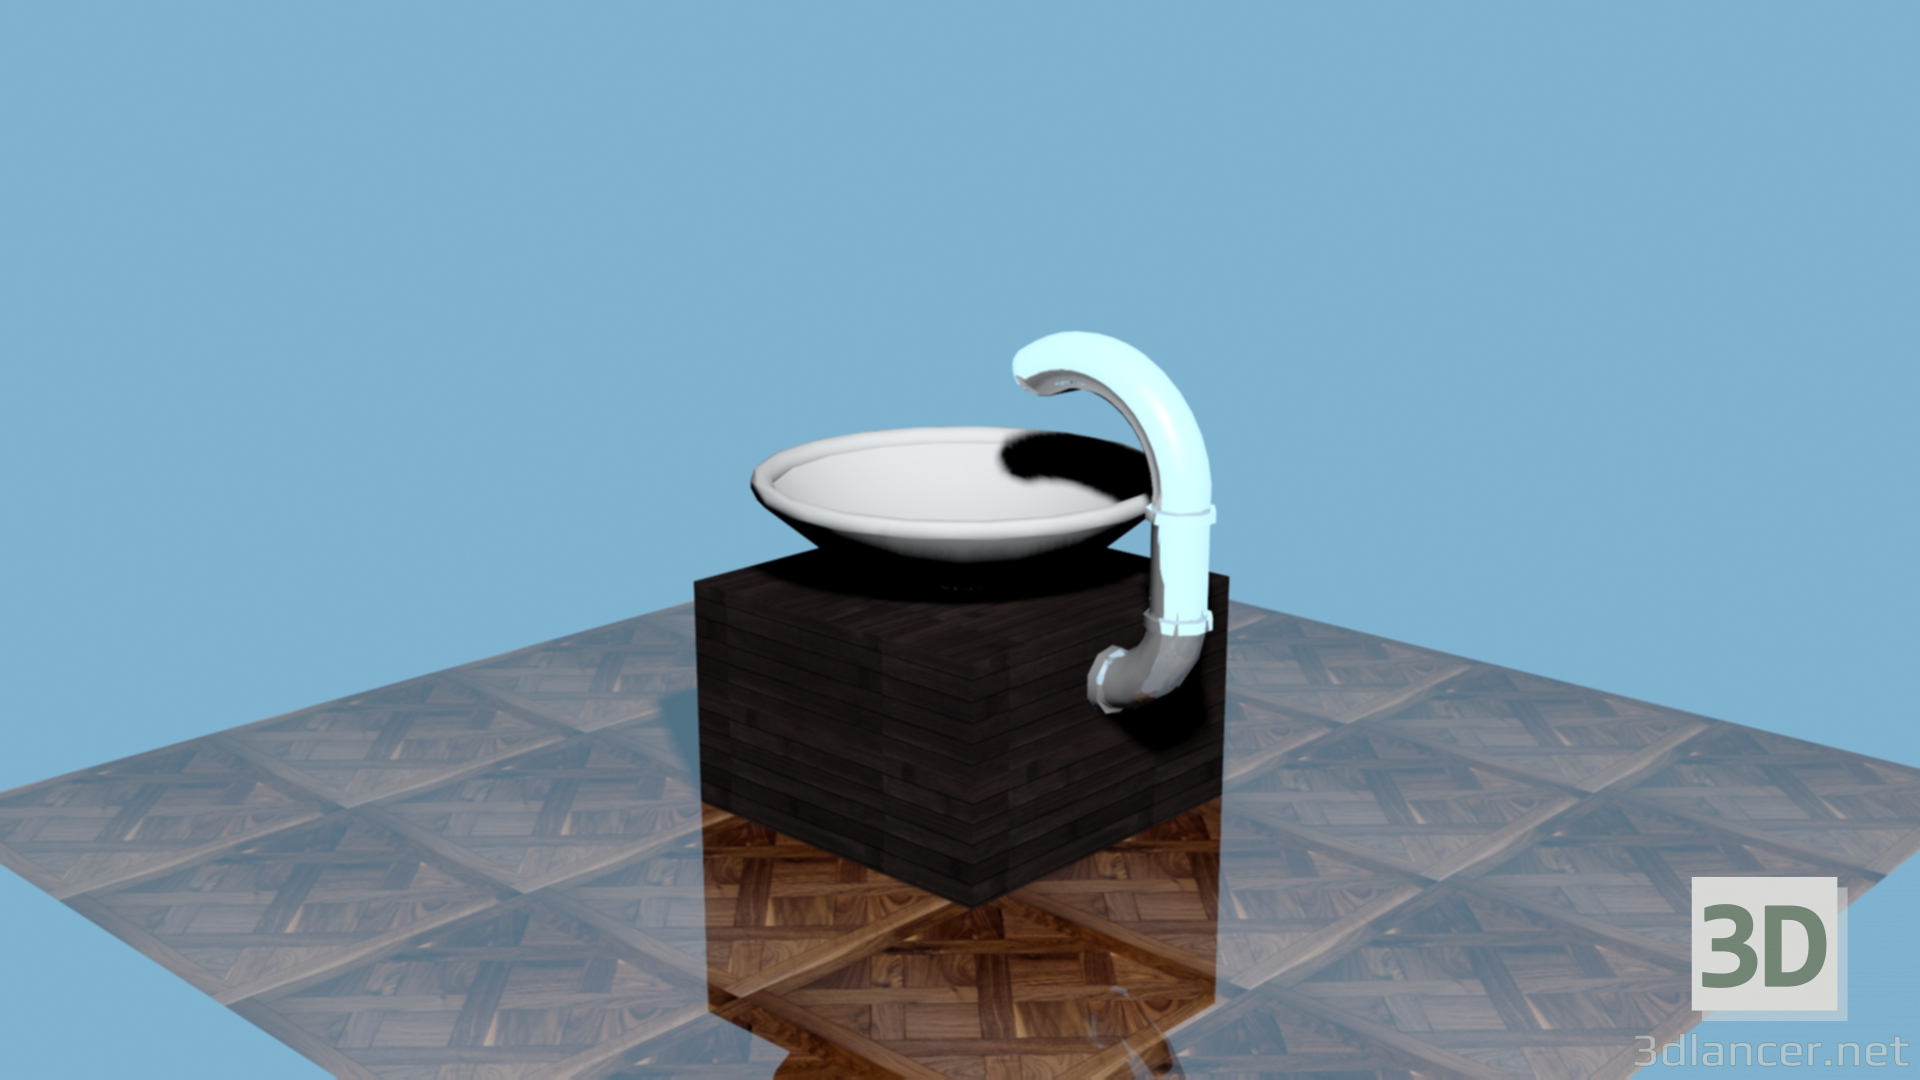 3d Modern sink model buy - render